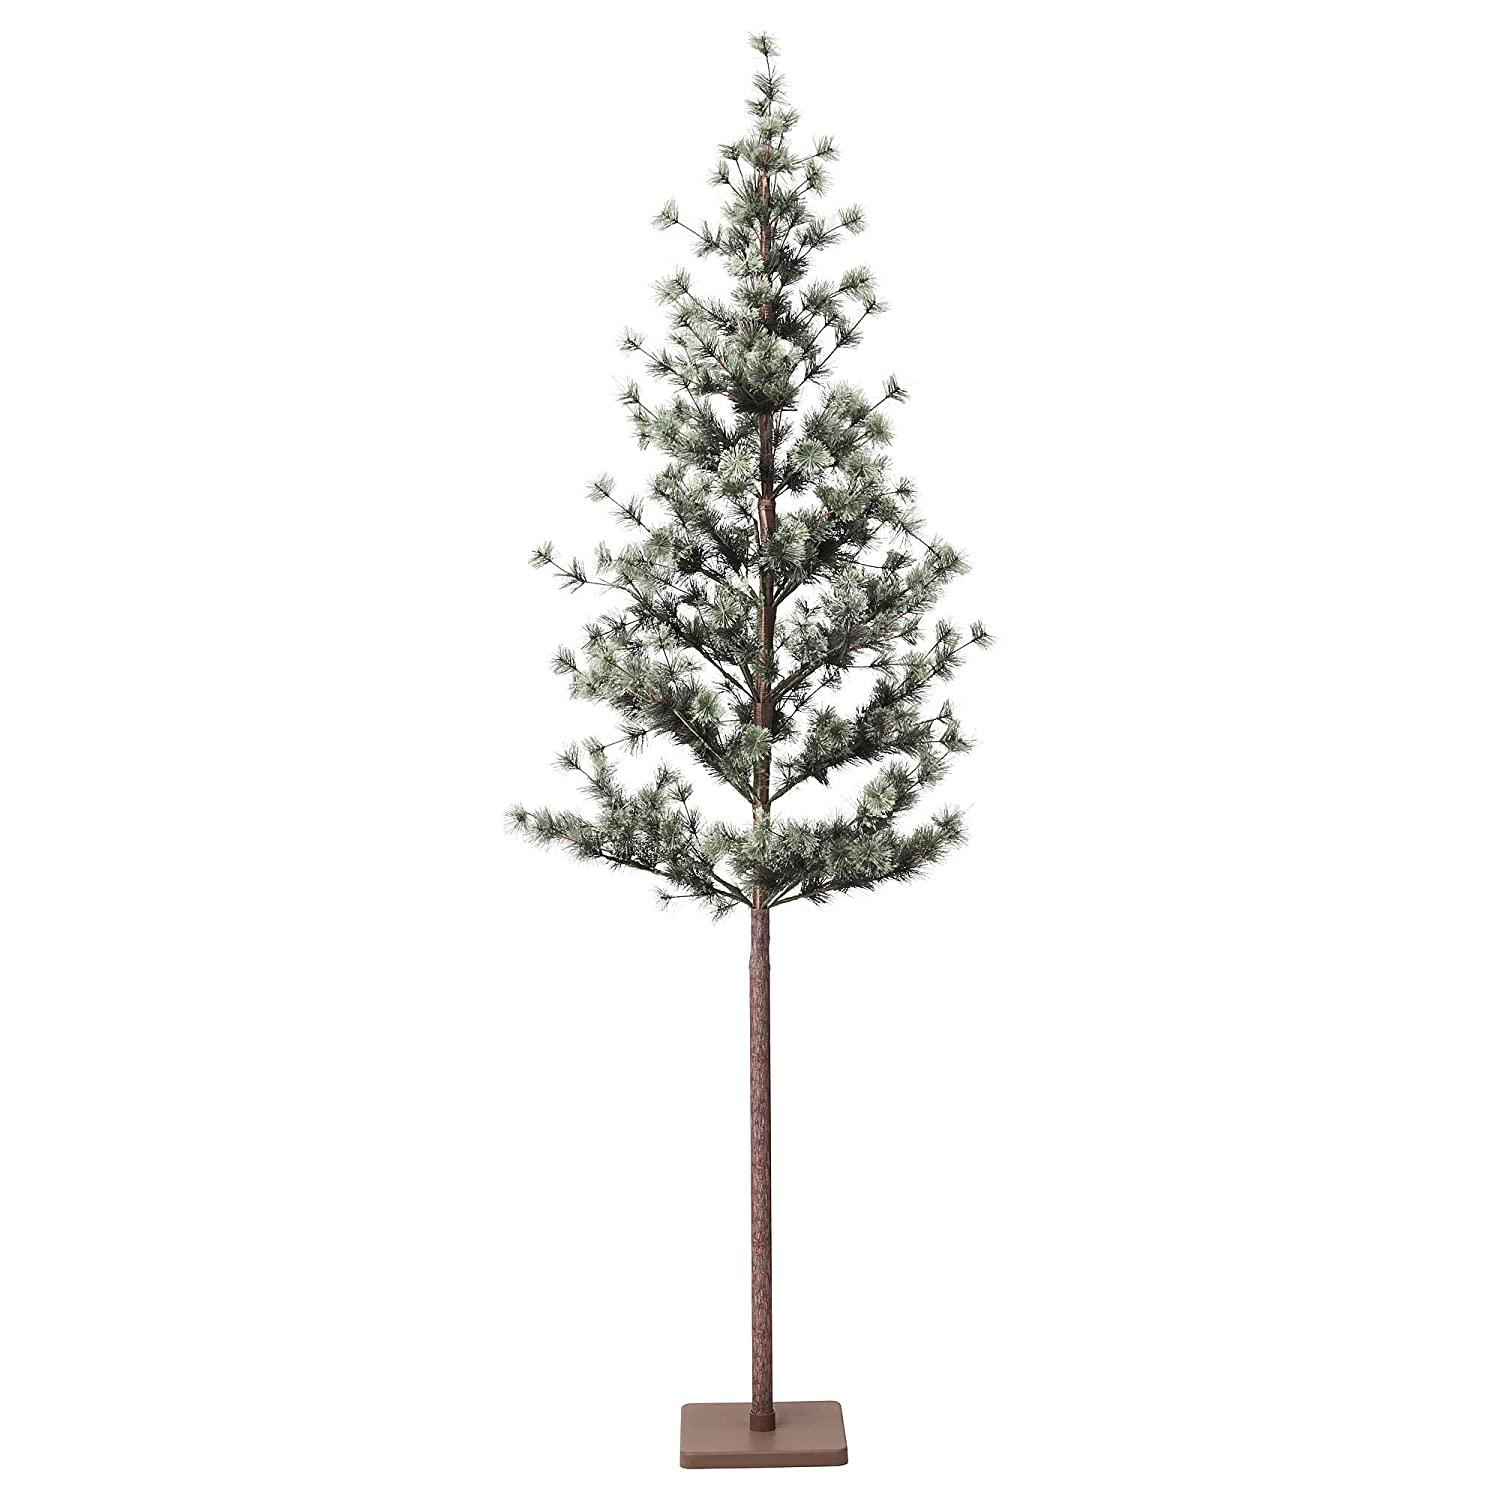 Amazon.com: IKEA Fejka Best Artificial Fake Christmas Tree - 7 ft 5 ...